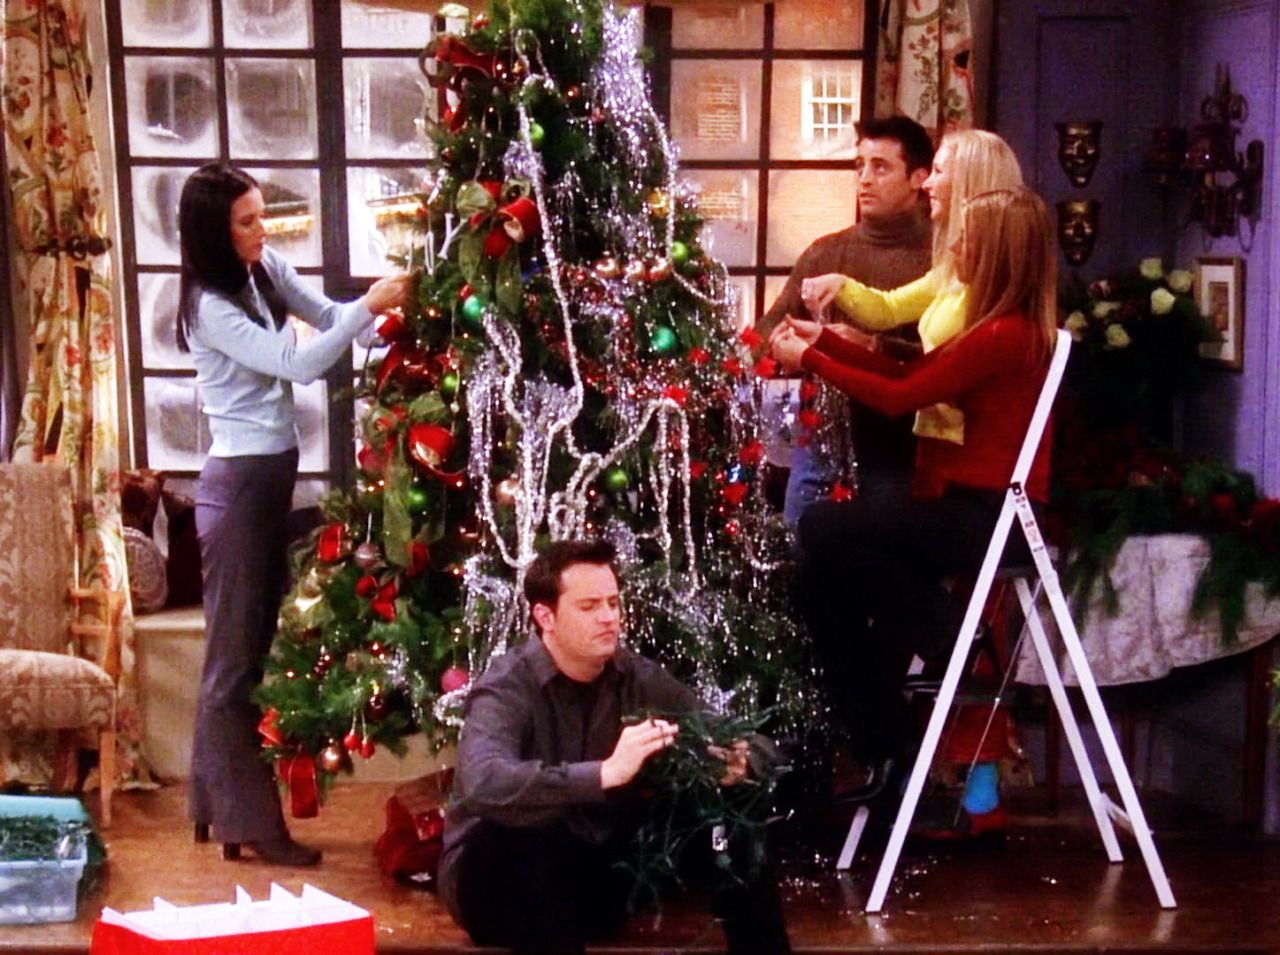 How You Doin In 2020 Friends Christmas Episode Christmas Episodes Friends Tv